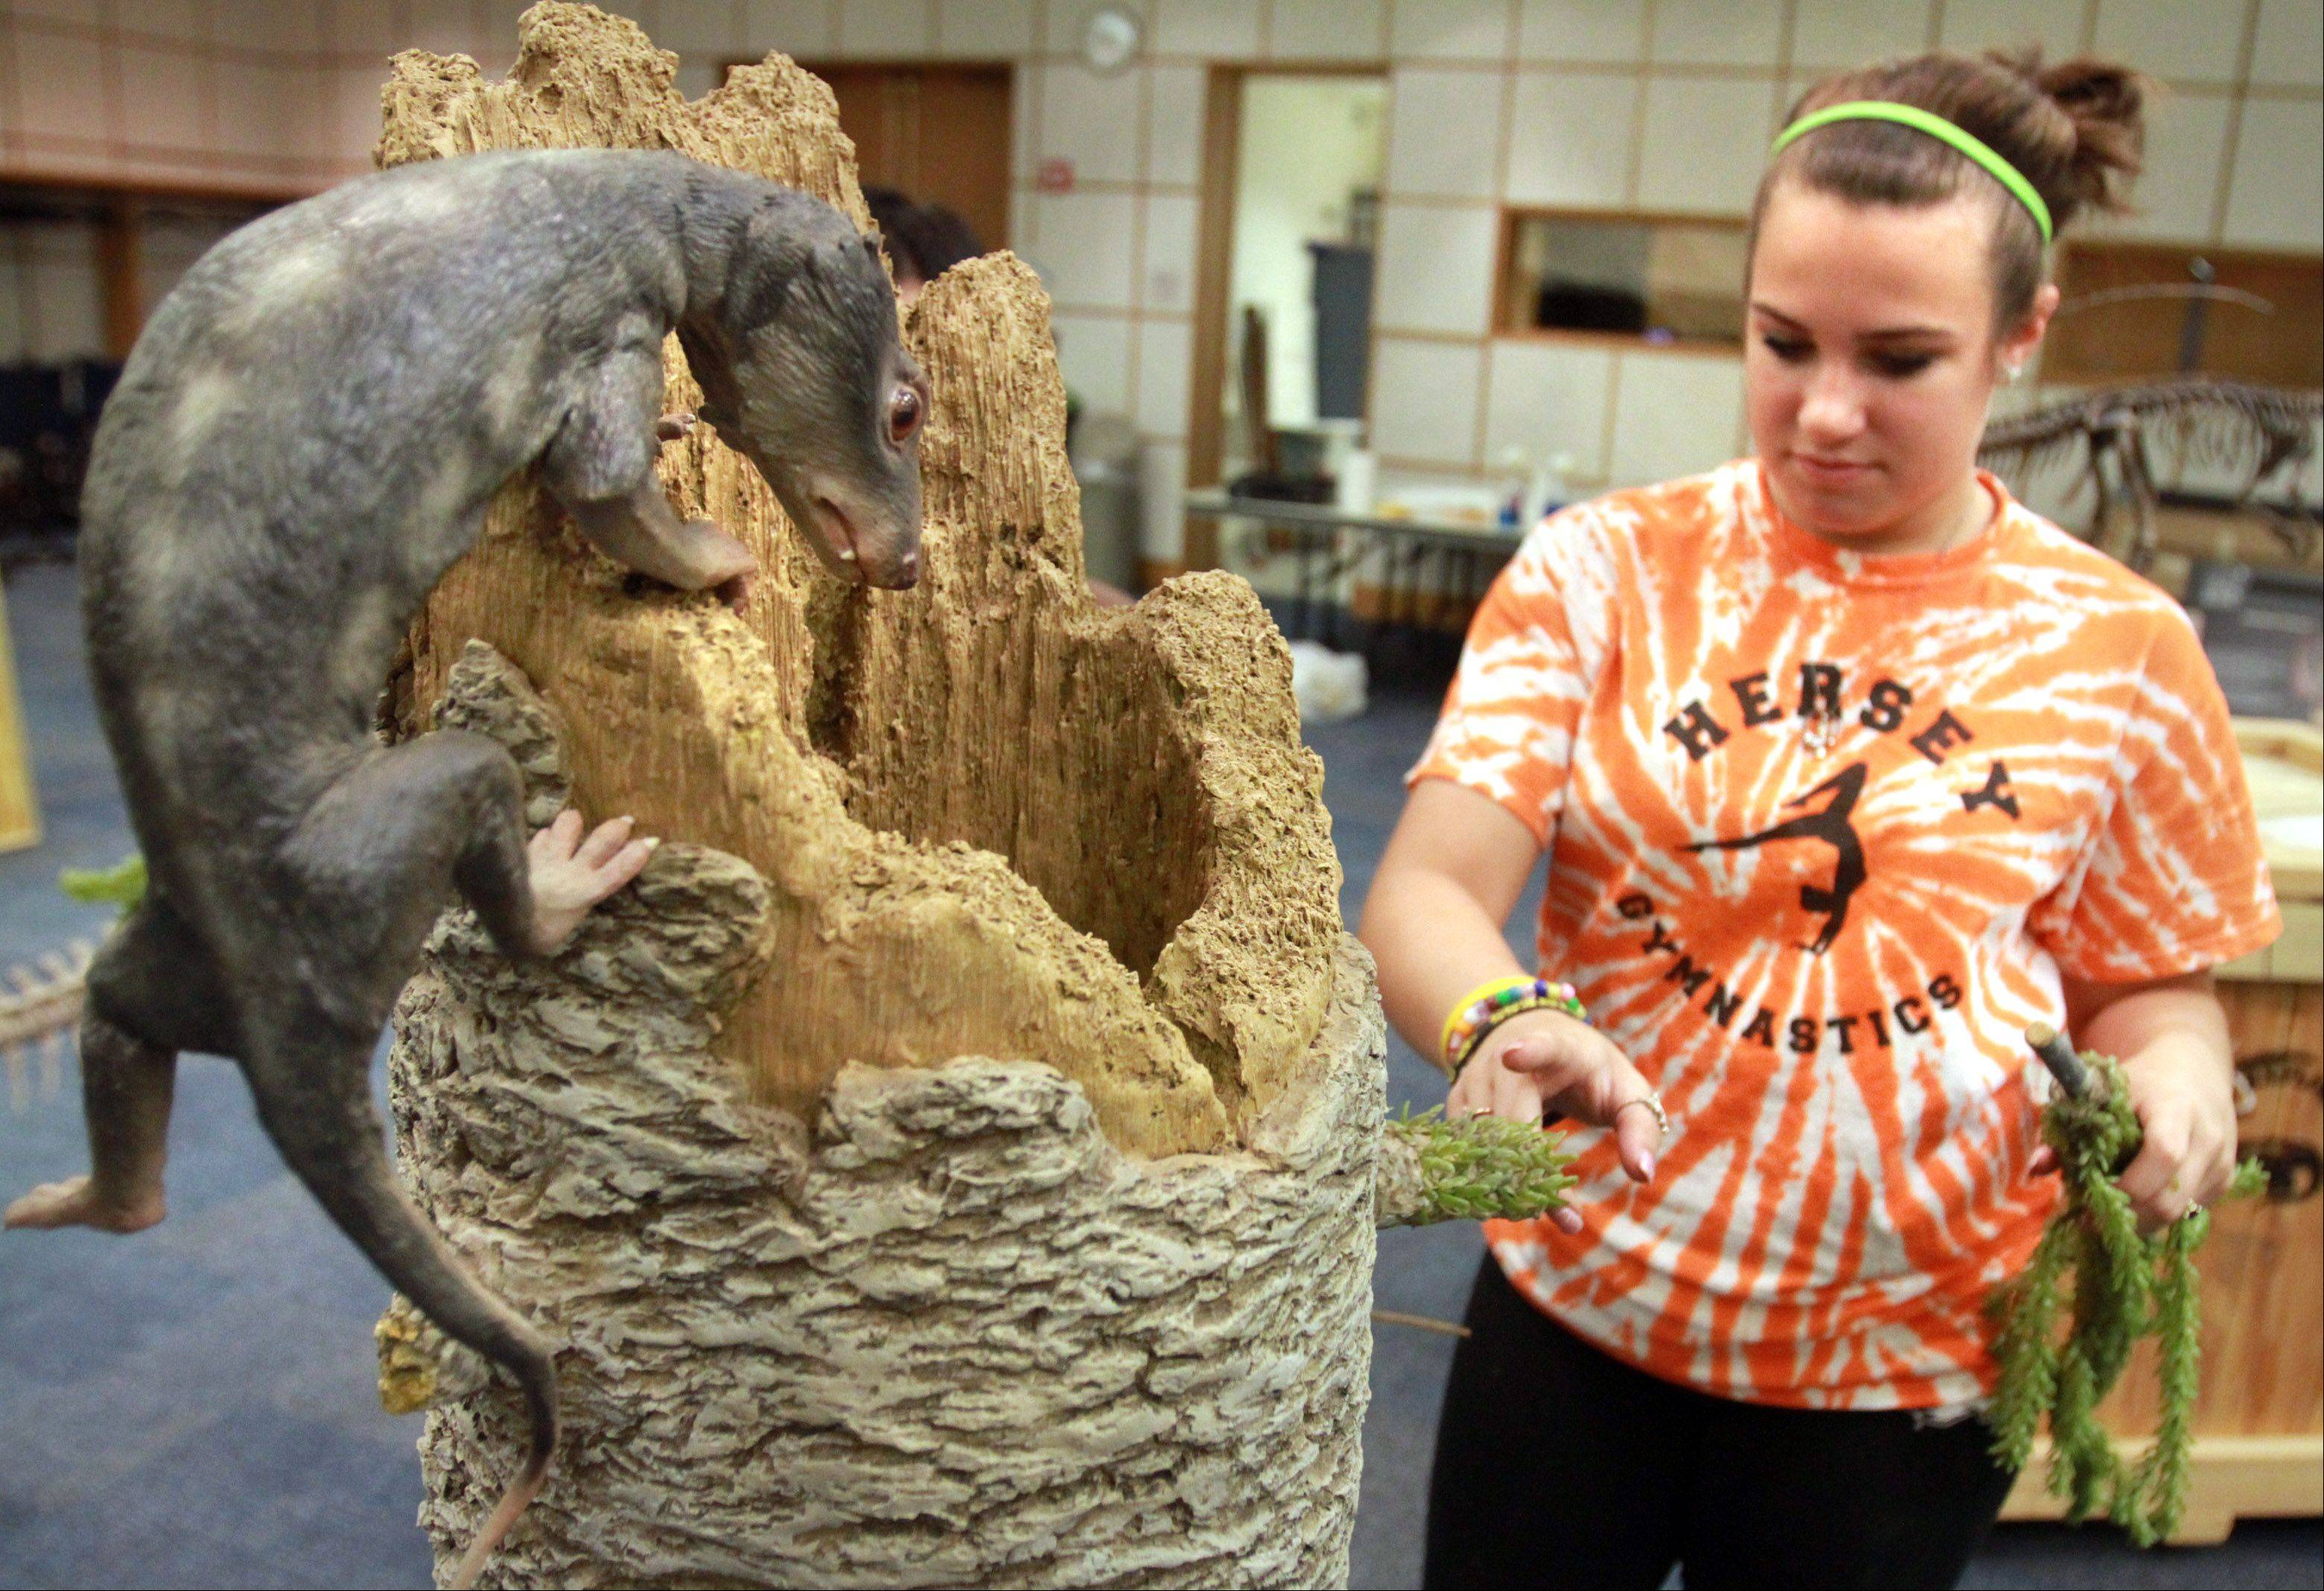 Volunteer Elizabeth Curley, 16, of Arlington Heights, places branches on a replica tree housing a small mammal-like reptile, Probelesdon, for the exhibit.